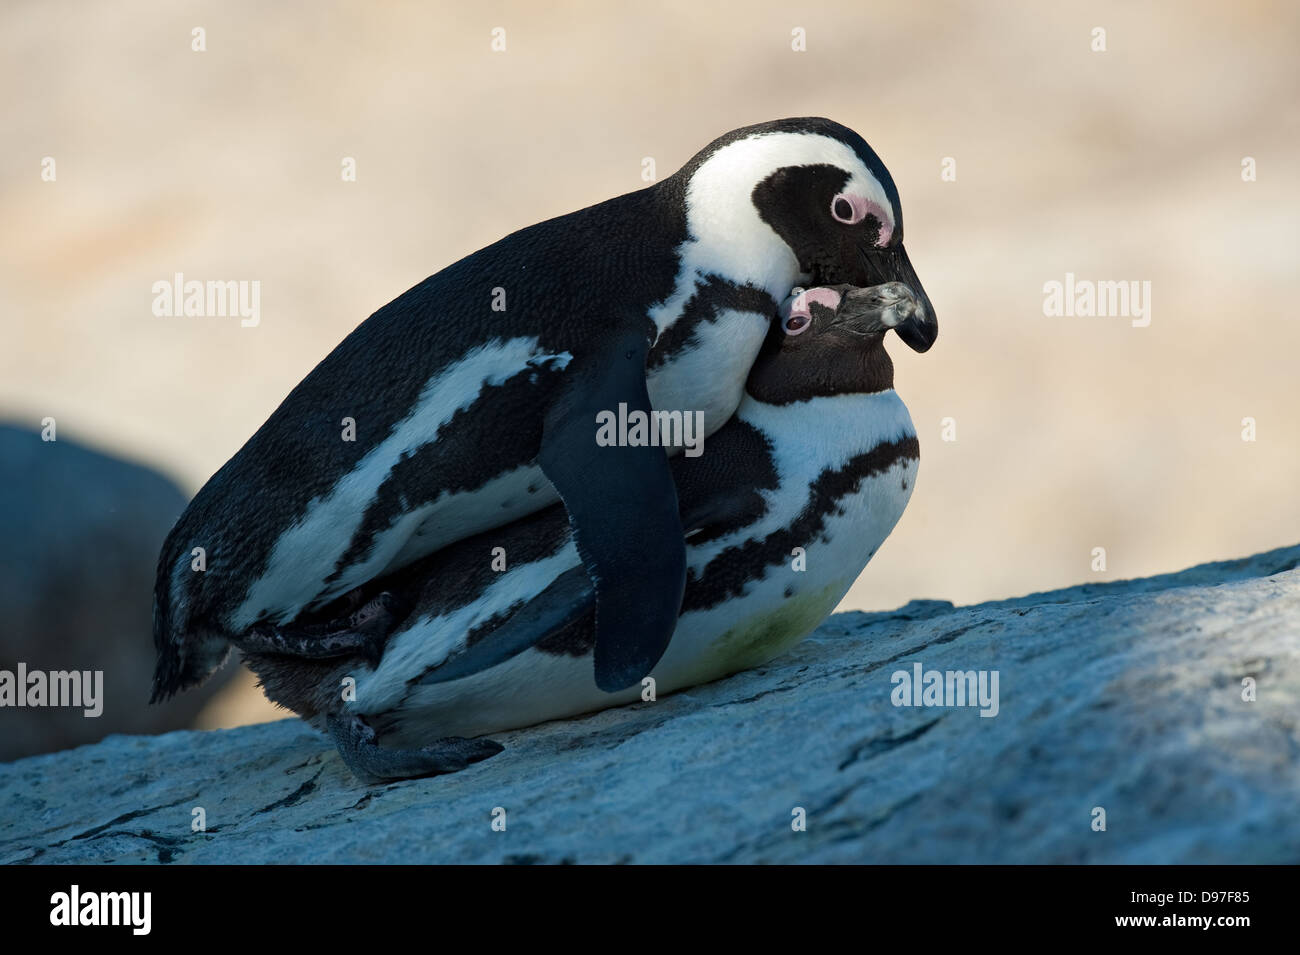 Pingouins africains l'accouplement, Spheniscus demersus, Boulders Beach, péninsule du Cap, Afrique du Sud Photo Stock